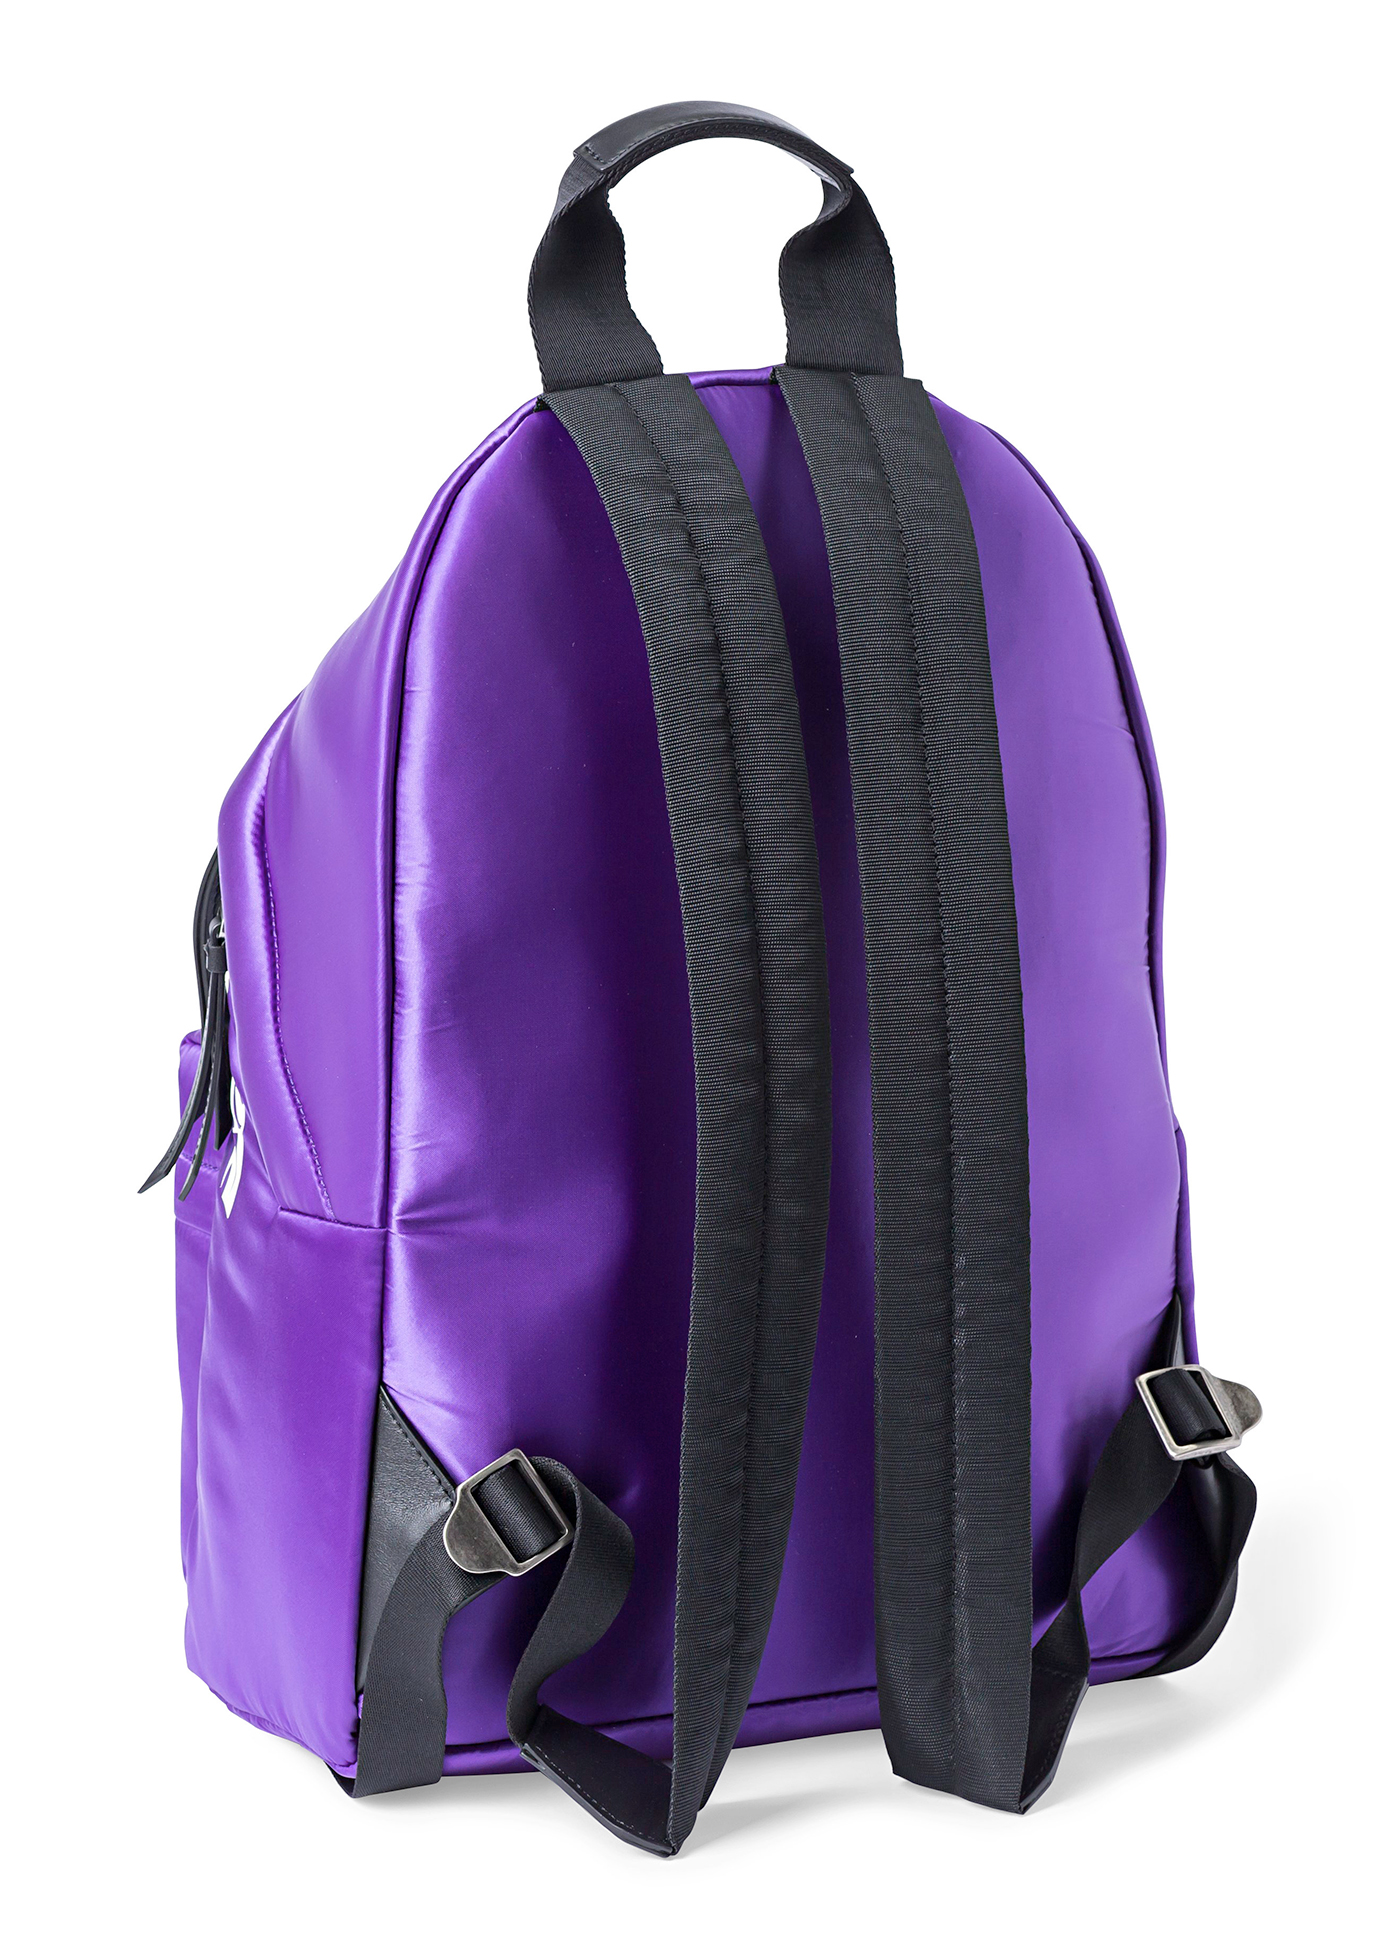 CURVED LOGO BACKPACK  PURPLE  WHITE image number 1